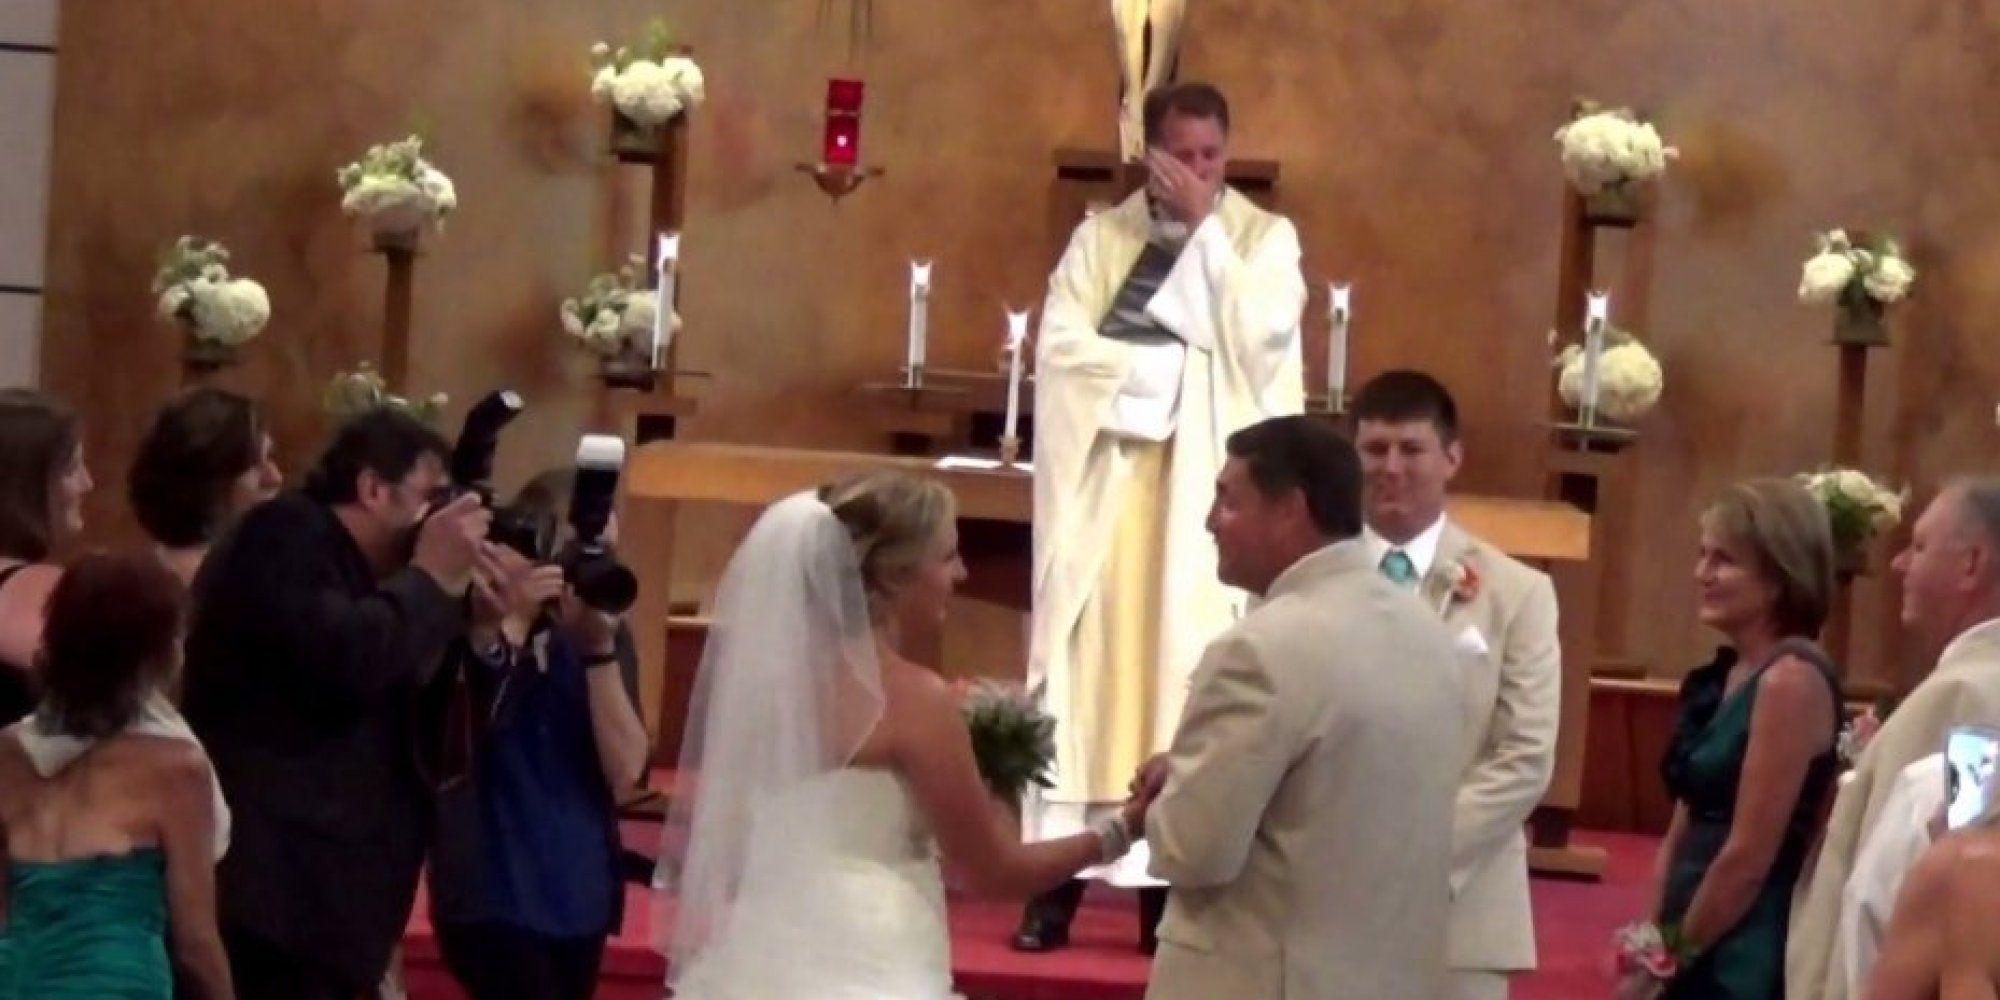 Father Of The Bride's Moving Song Brings Wedding Party To